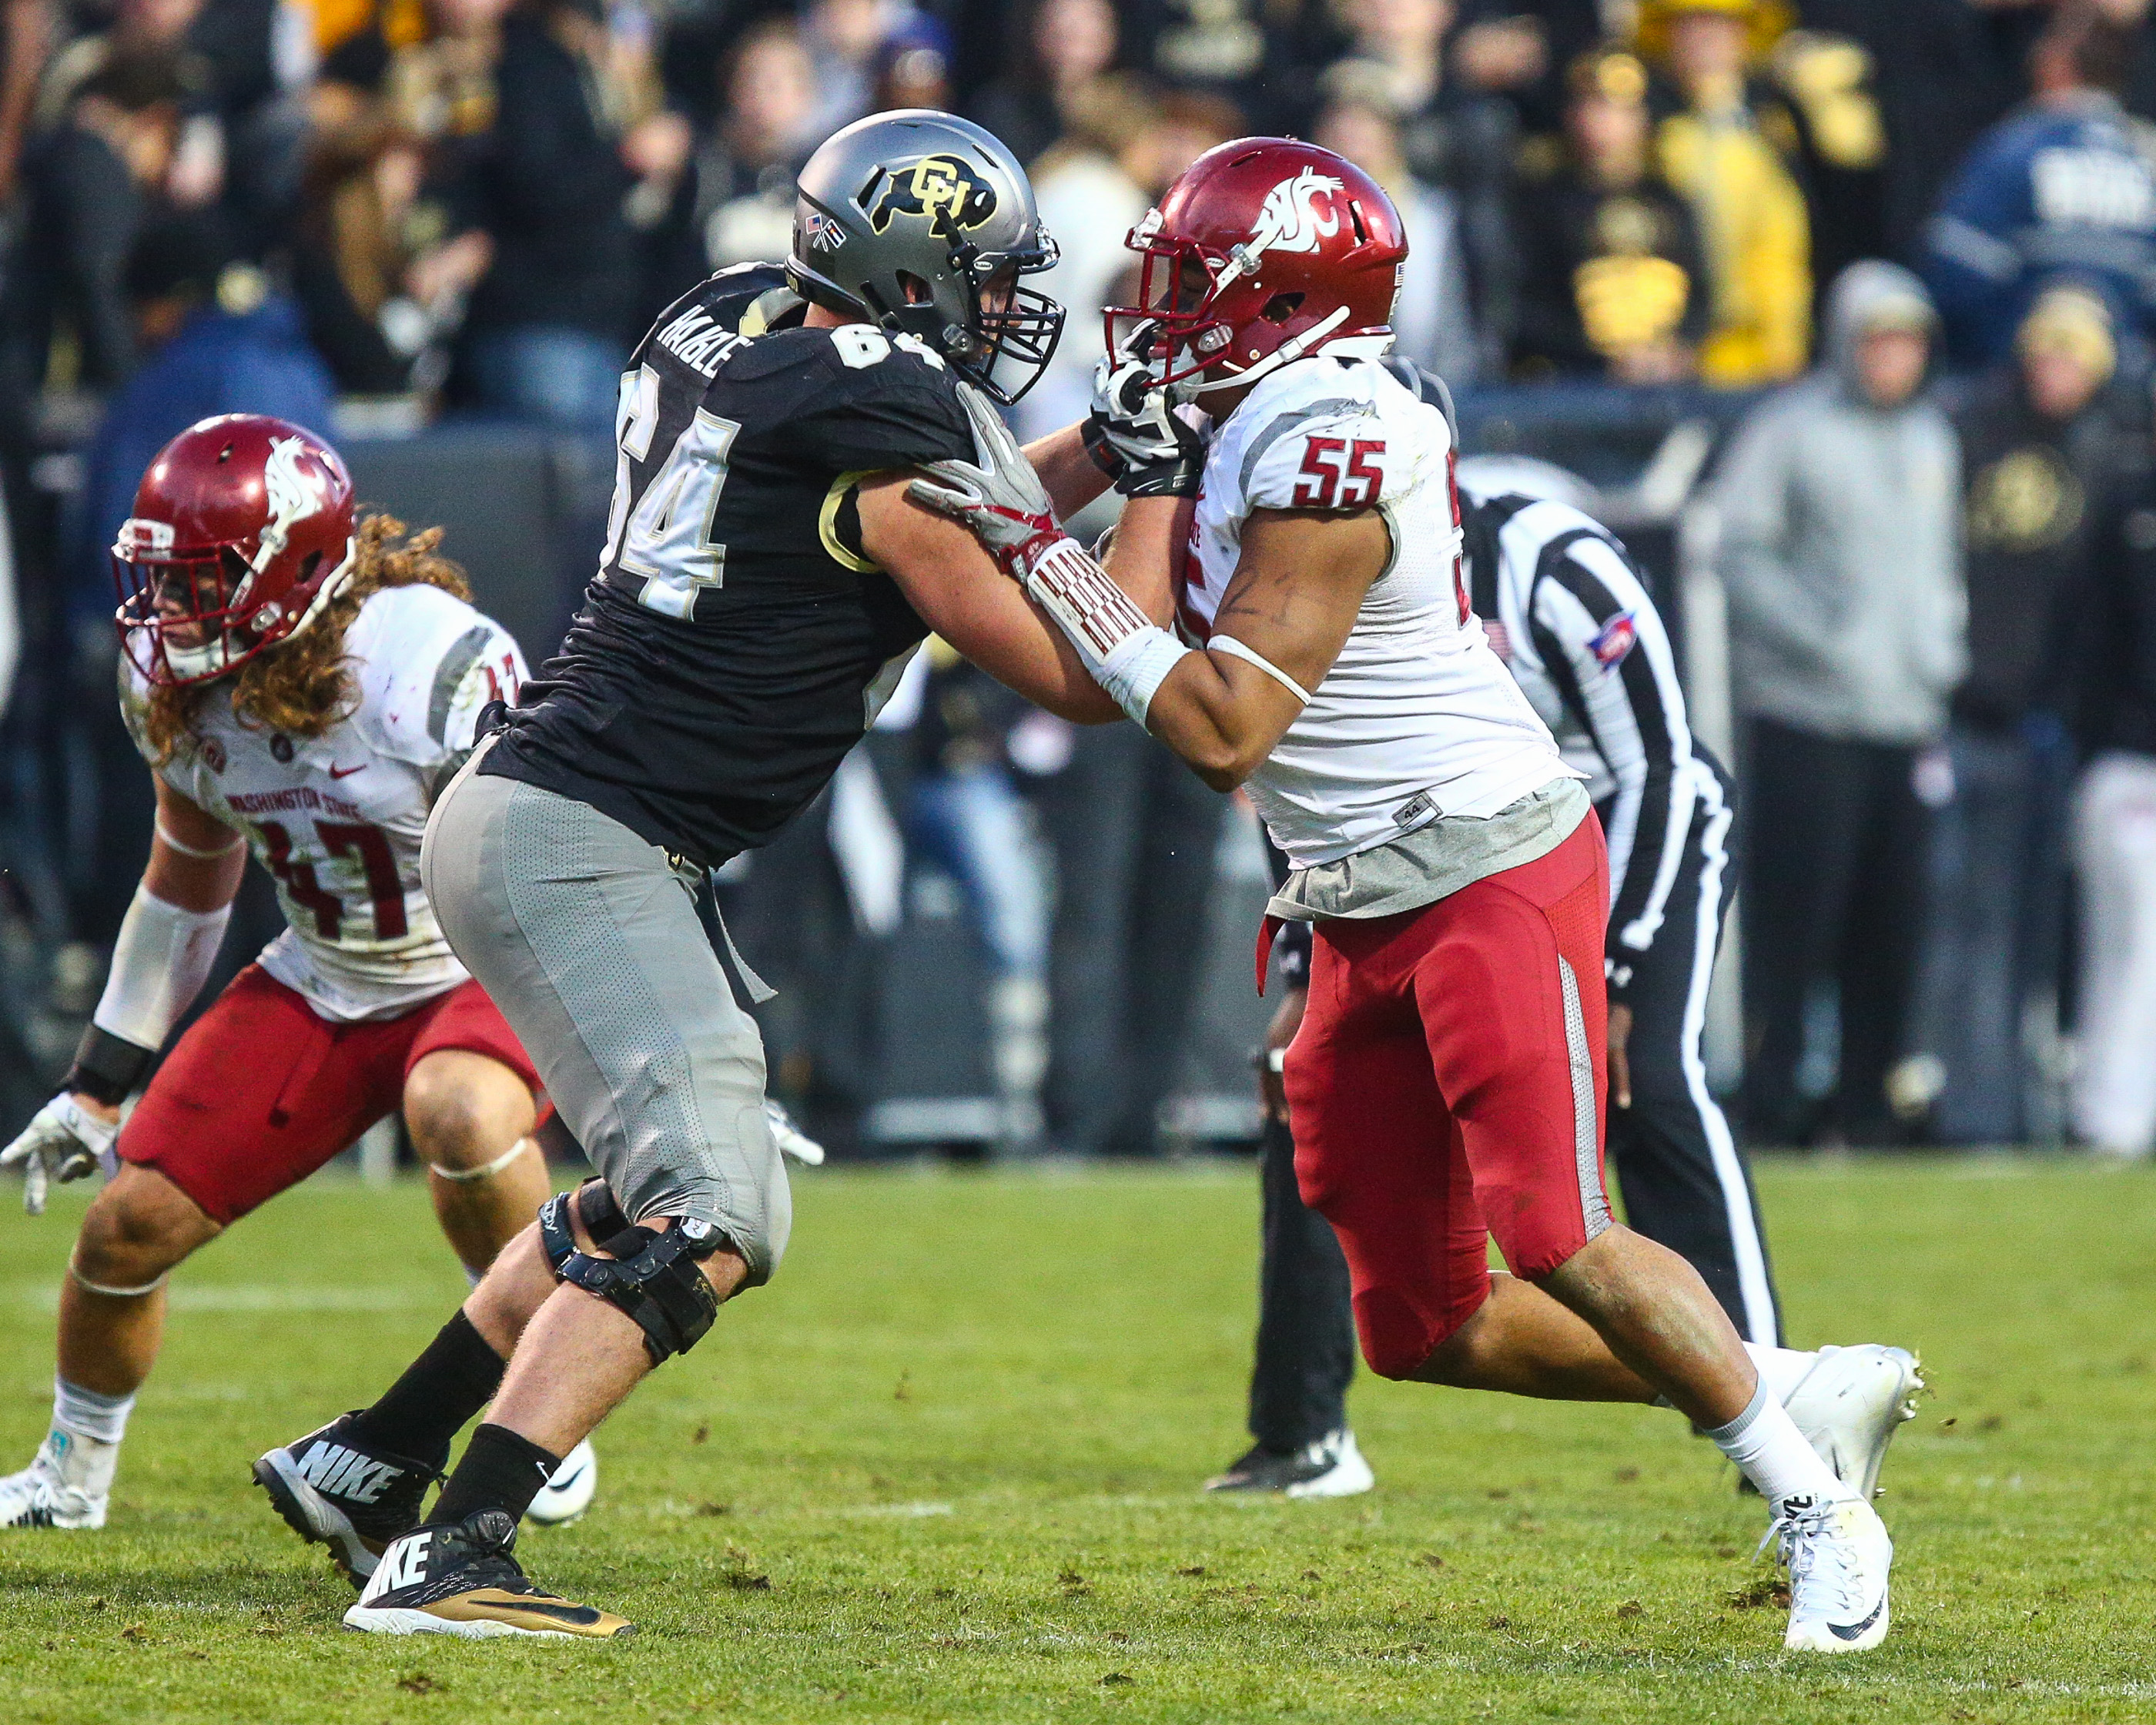 Get the latest Washington State Cougars news scores stats standings rumors and more from ESPN